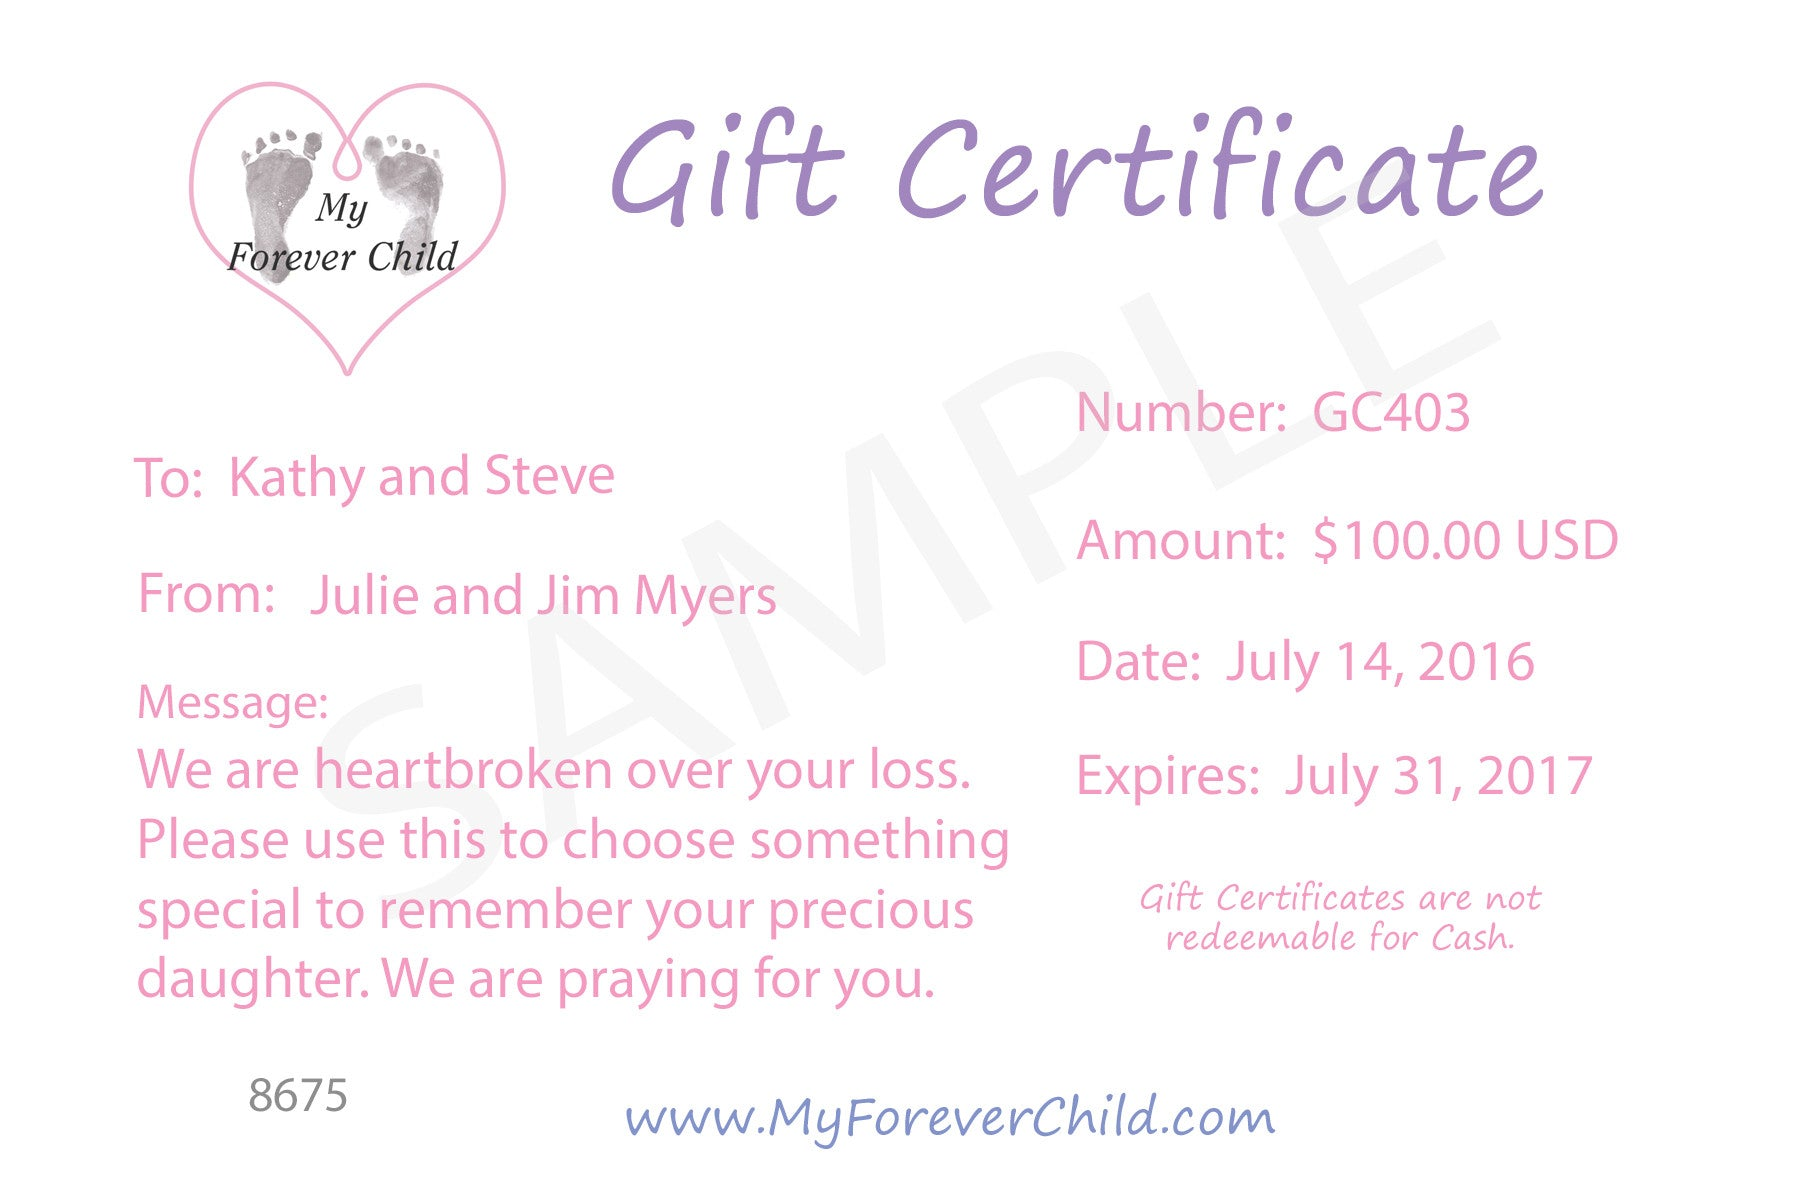 Gift Certificates make the perfect solution for those that want to give a memorial gift but